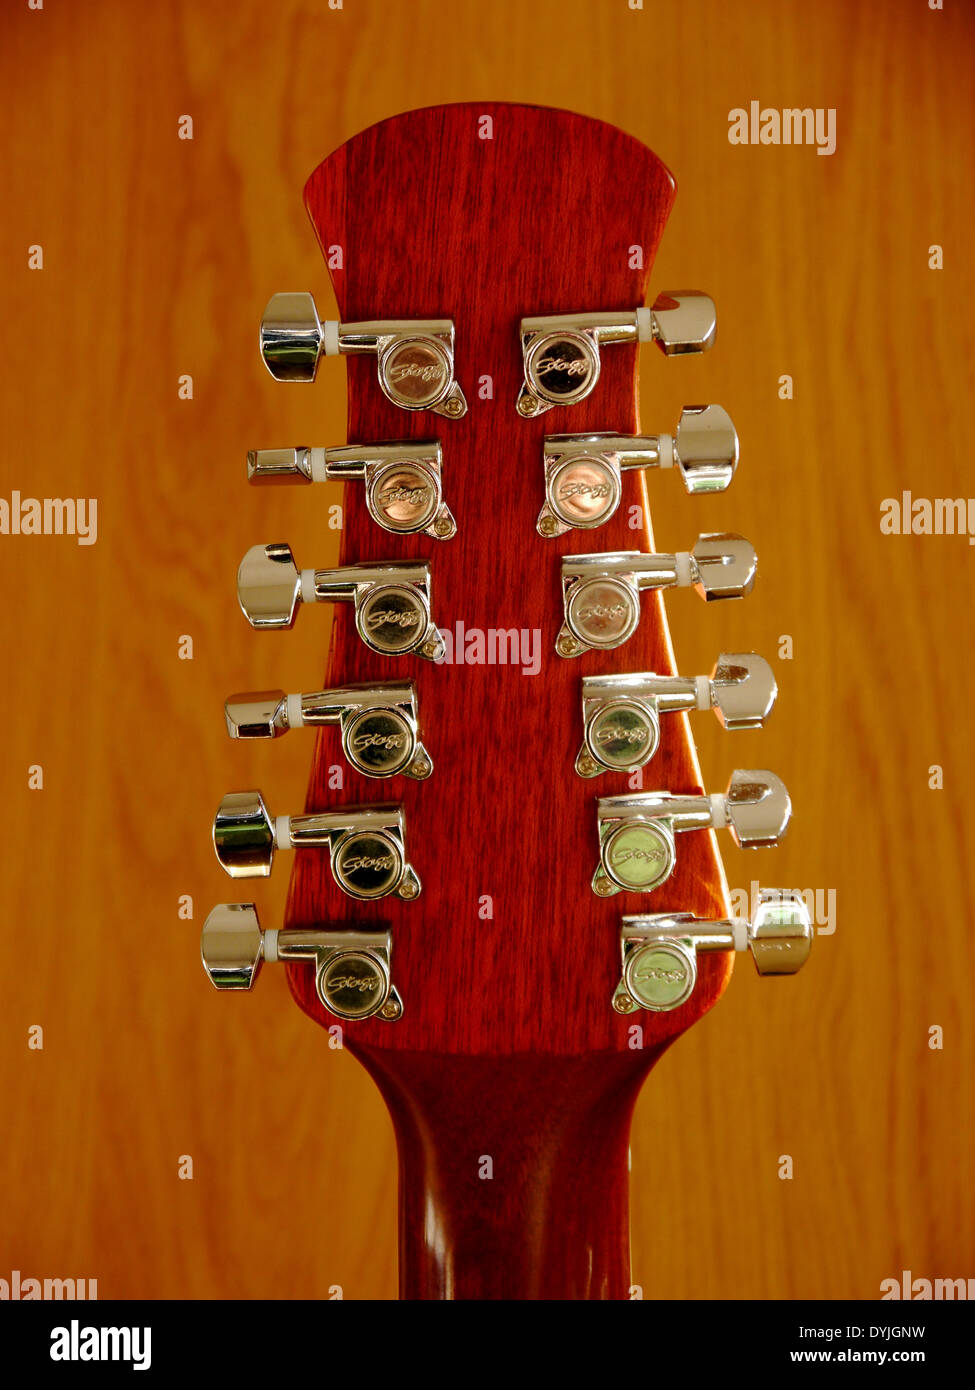 Head Stock Of 12 String Stagg Electro Acoustic Guitar Showing Chrome Tuning Pegs And Nut